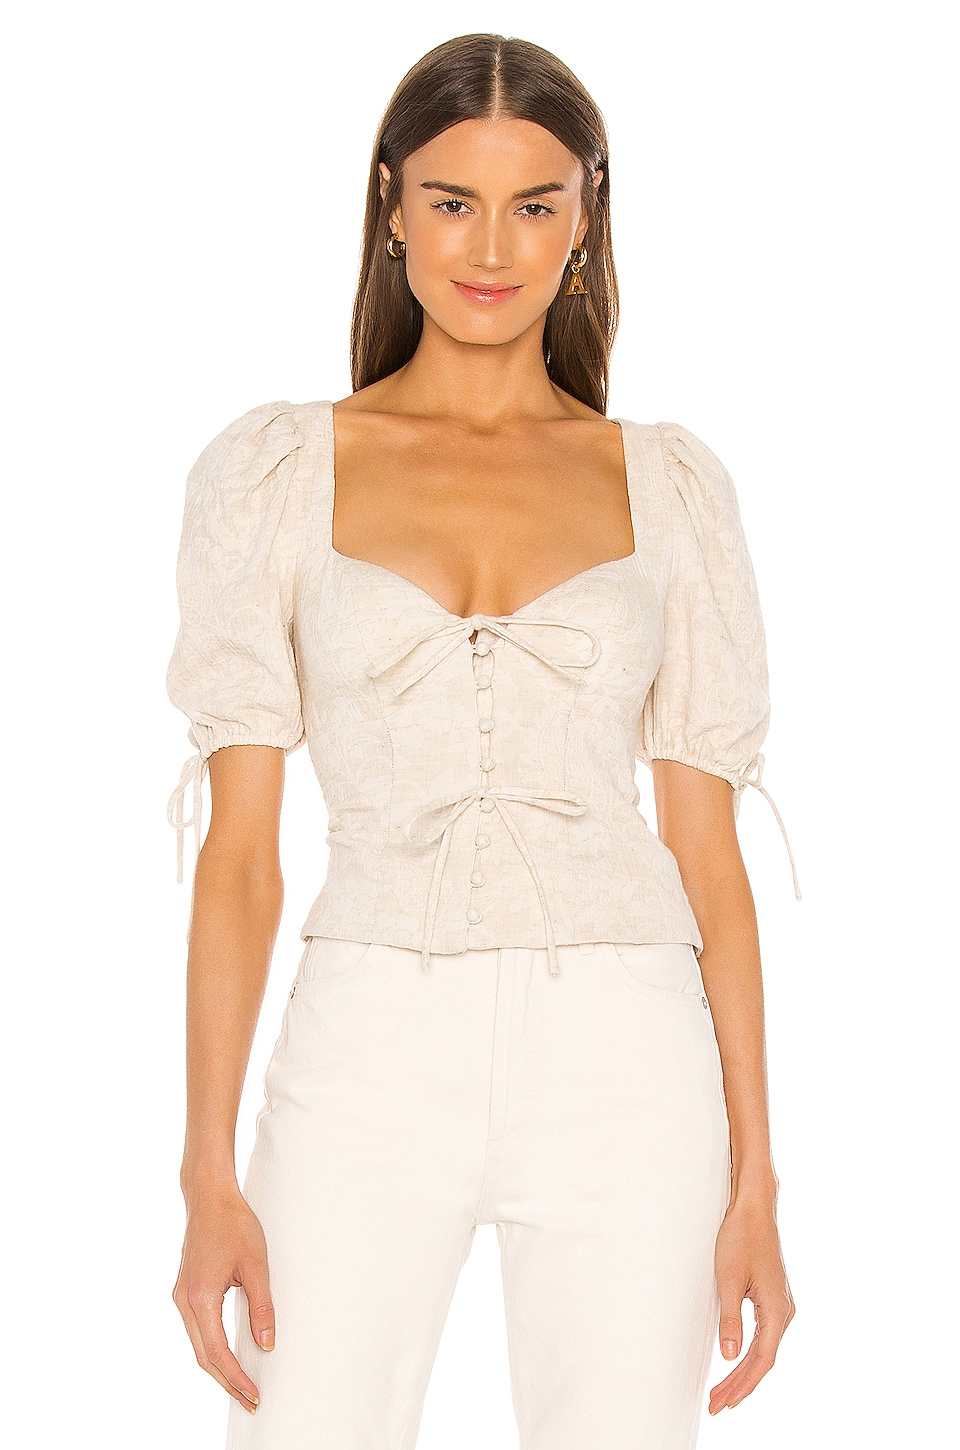 MAJORELLE Cordova Top in Oatmilk